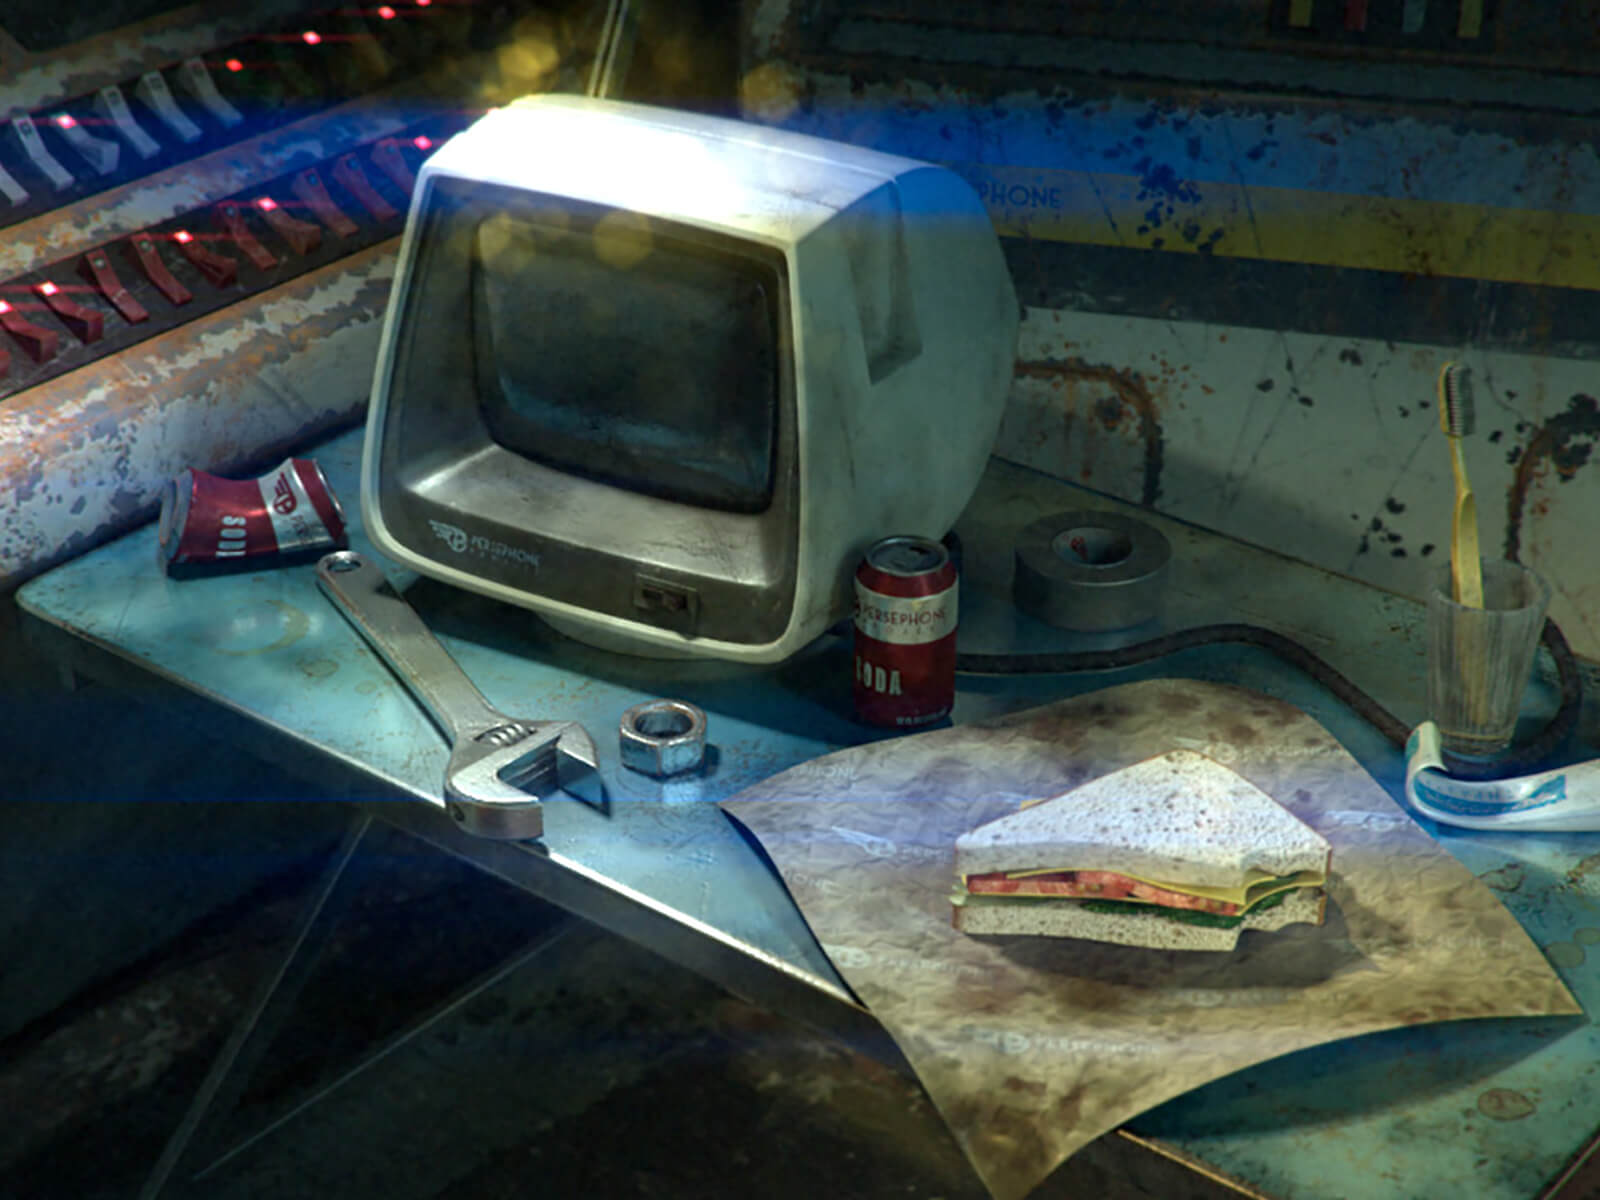 An antiquated computer monitor sits on a messy blue fold-out table with a wrench, toothbrush, and half-eaten sandwich.